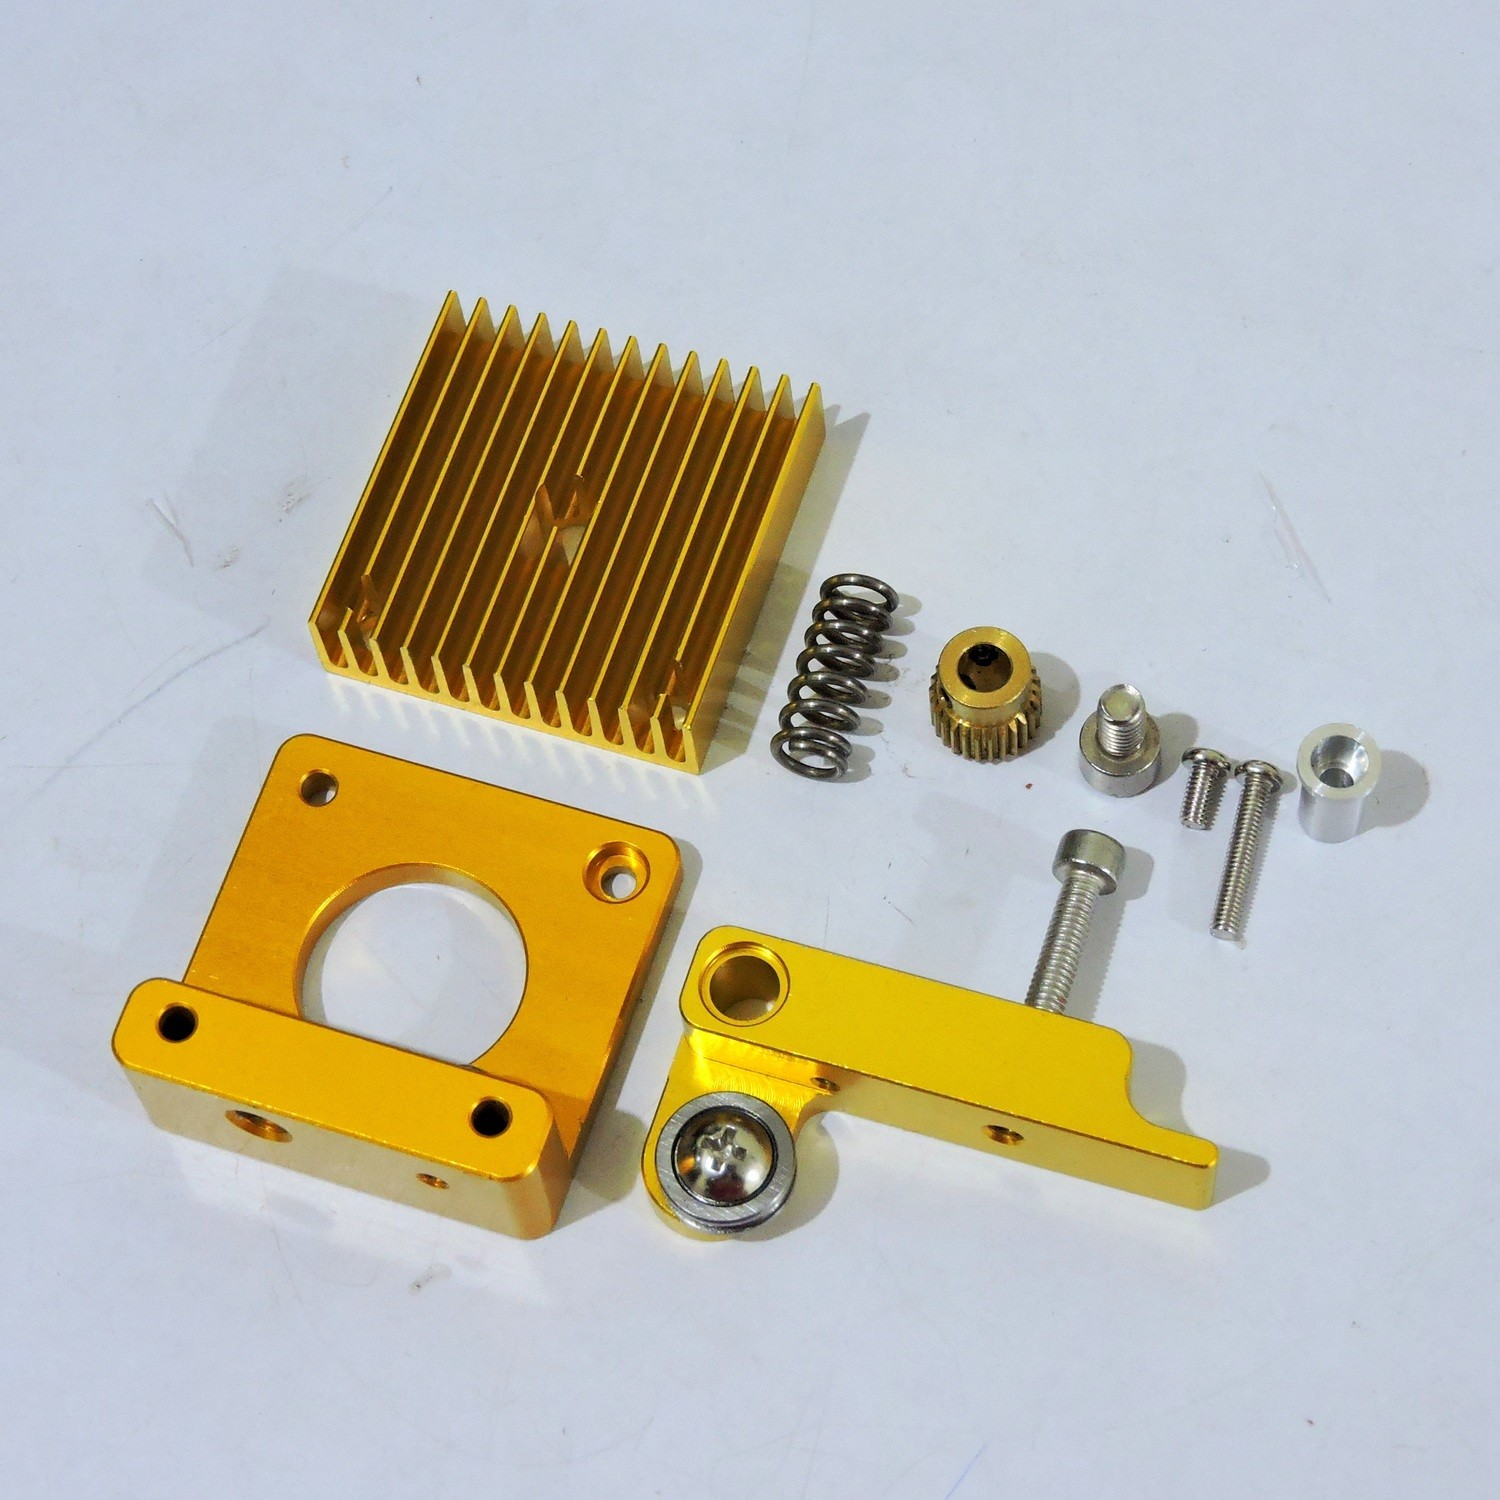 MK8  Extruder Filament Pulling Mechanism